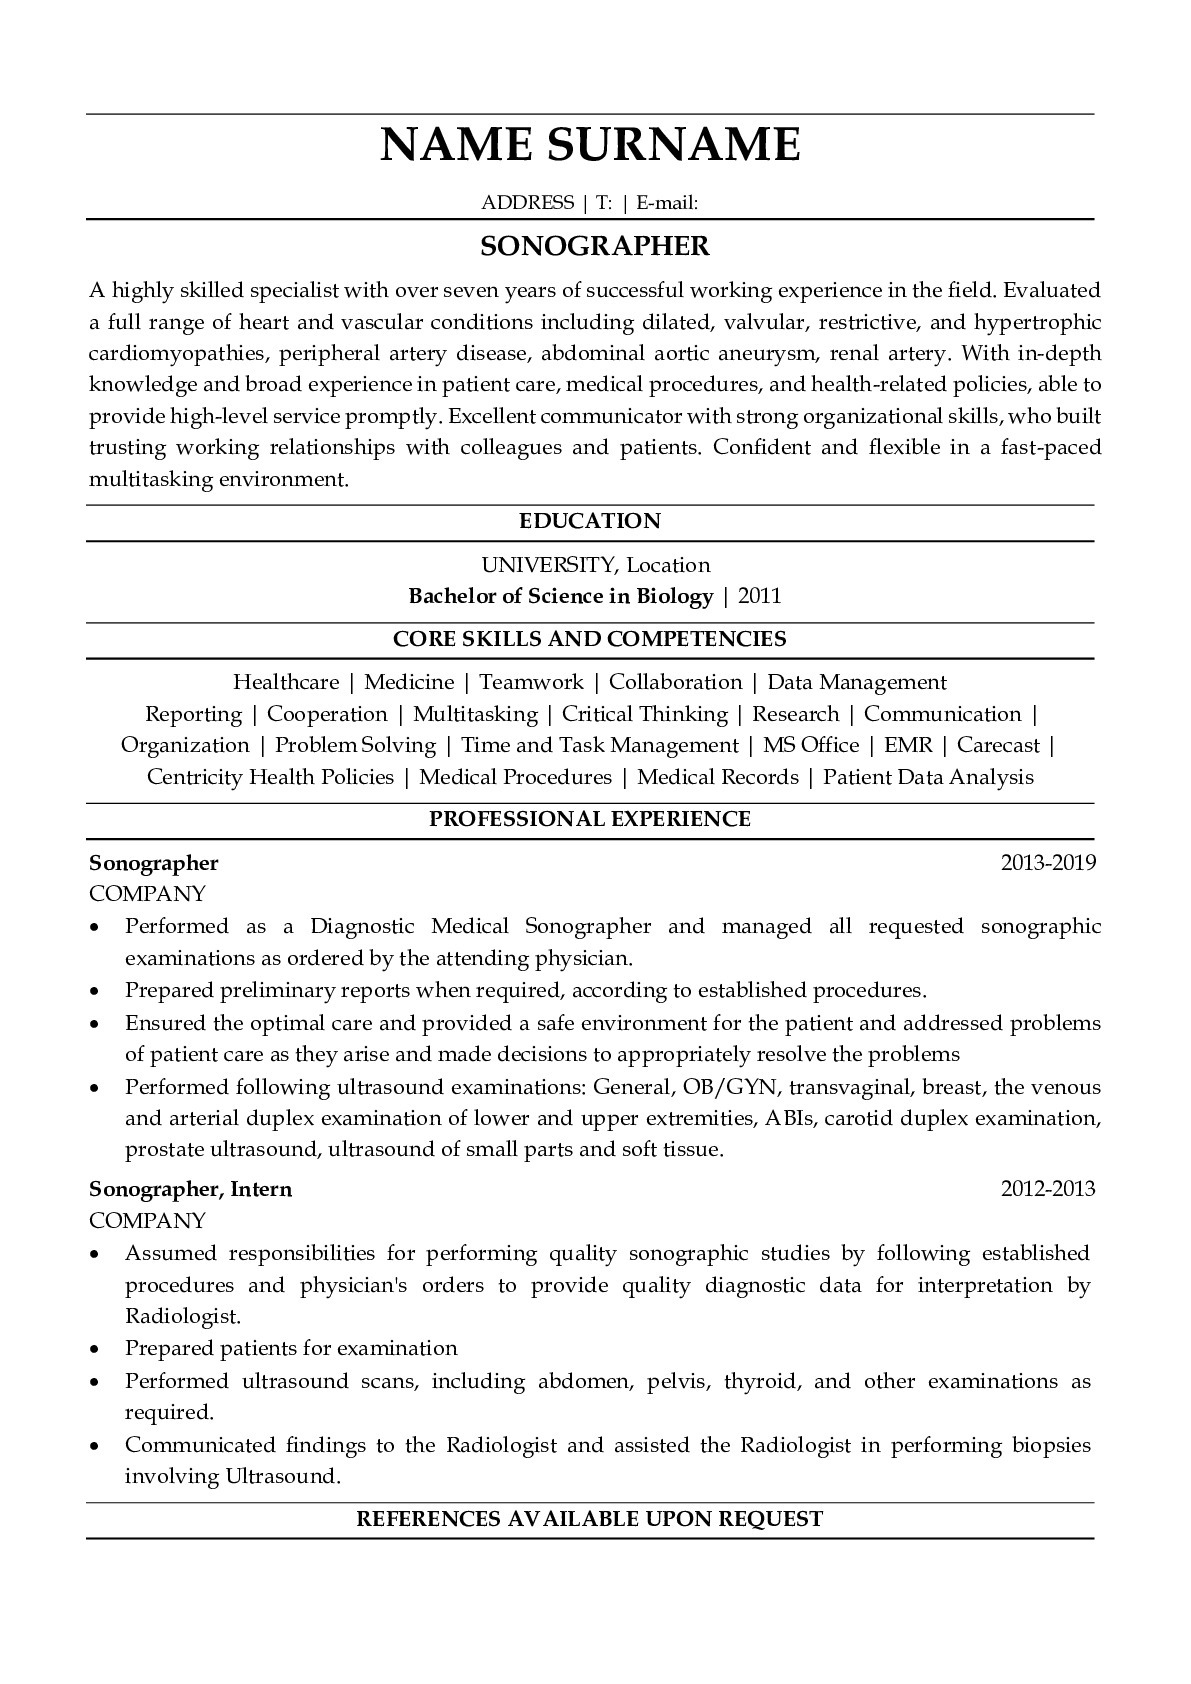 Resume Example for Sonographer